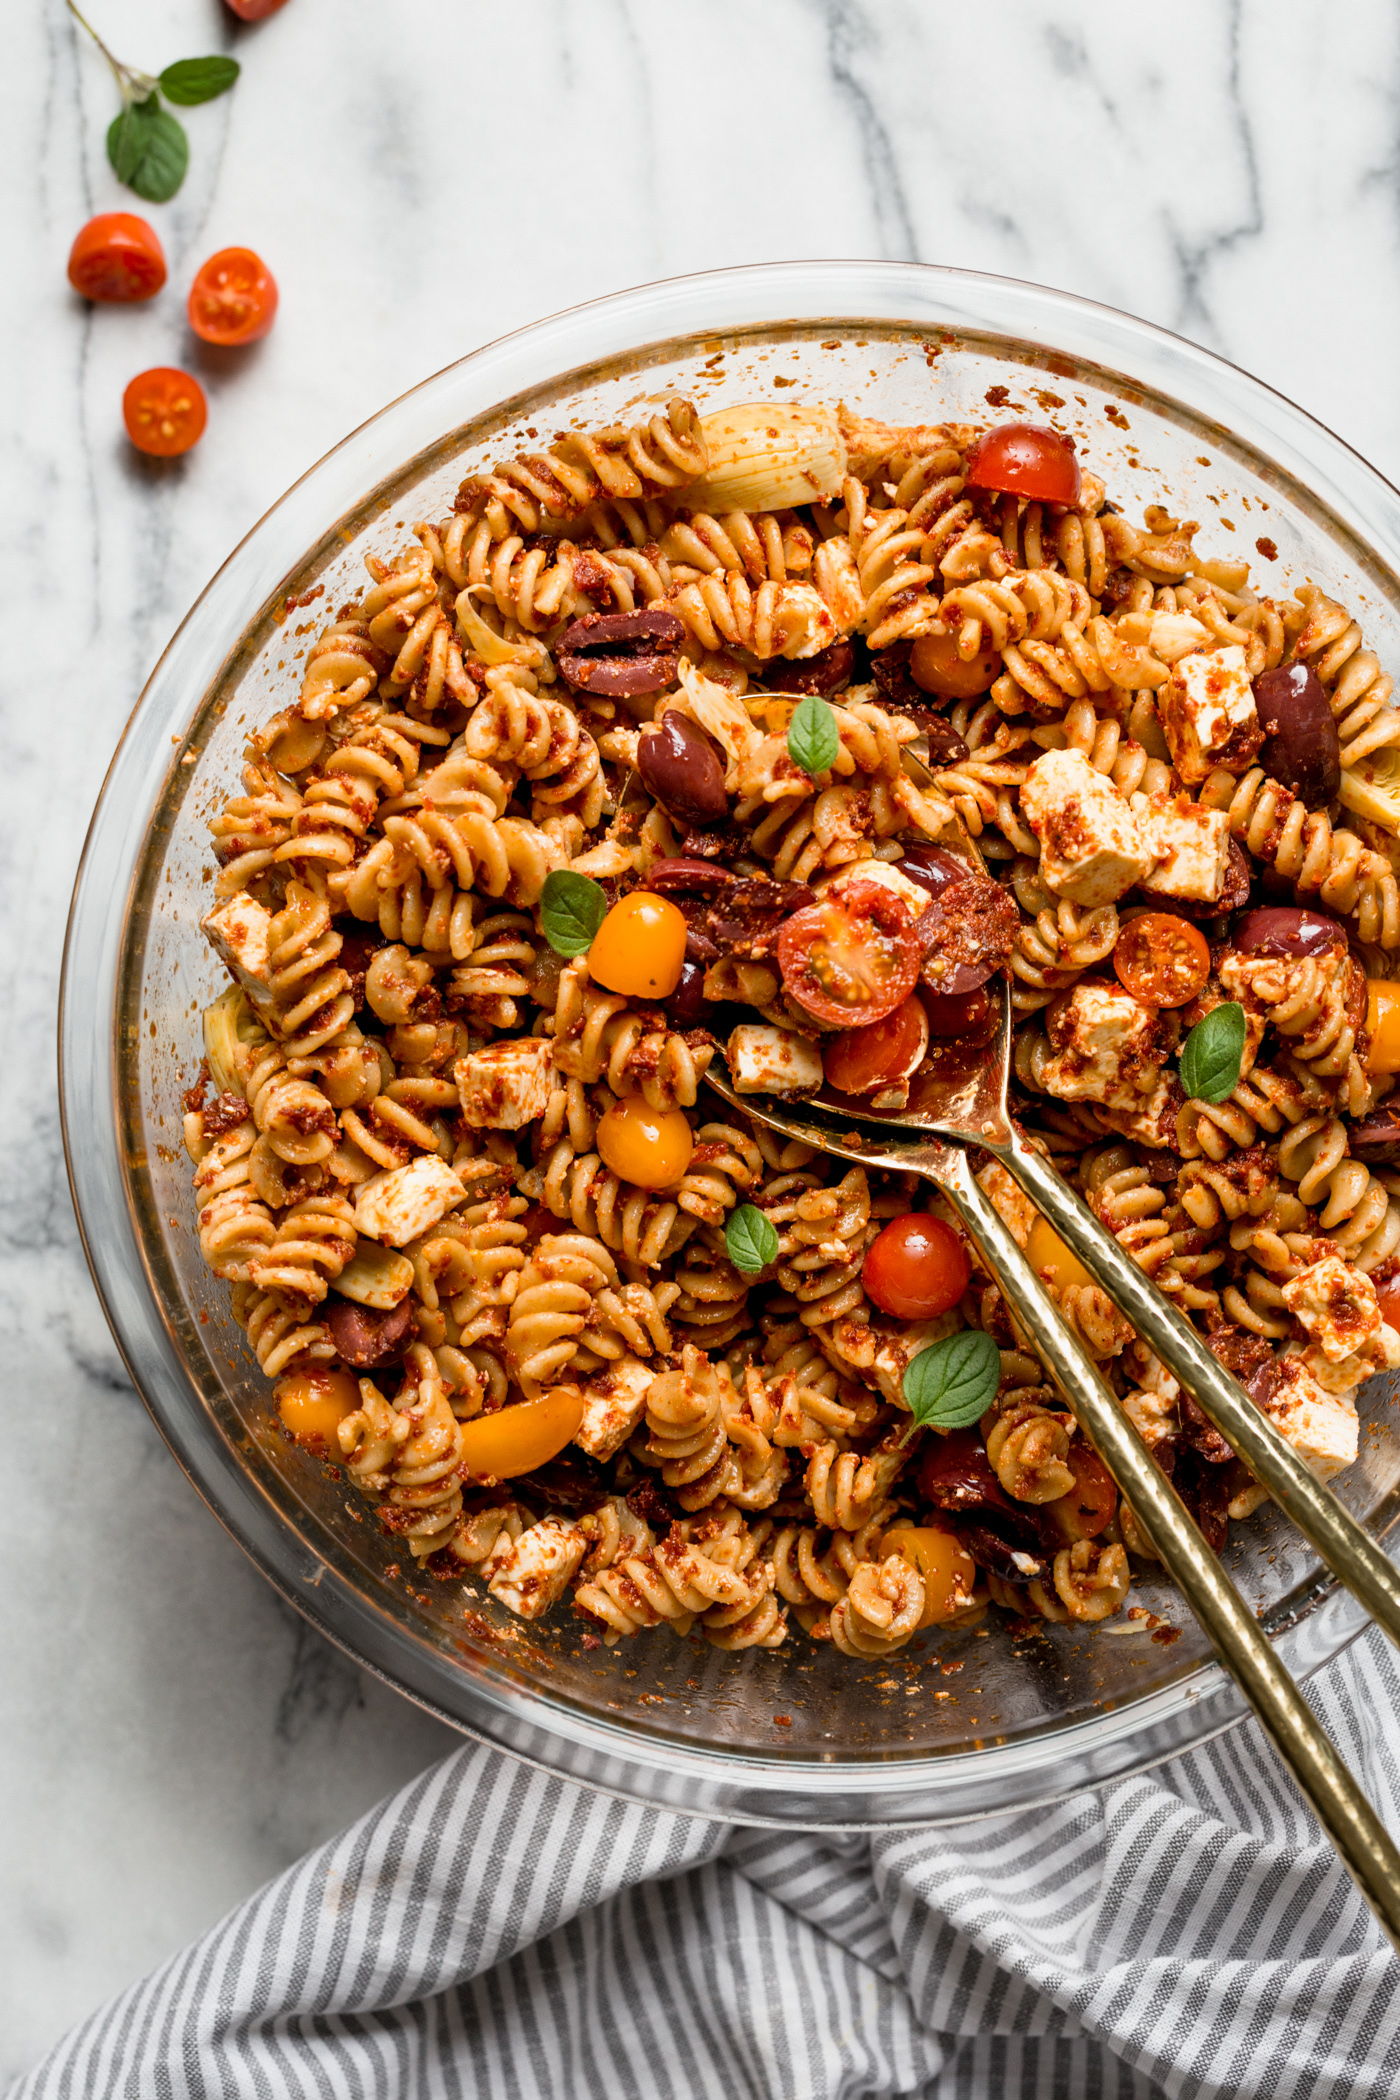 this delicious sundried tomato pasta salad only has 6 ingredients. it's unbelievably quick and easy to throw together, & even more unbelievably tasty! the best pasta salad recipe for an easy weeknight dinner or to serve for a crowd at a summer party! #playswellwithbutter #pastasalad #pastasaladrecipe #easypastasaladrecipe #easydinnerrecipe #sundriedtomatopastasalad